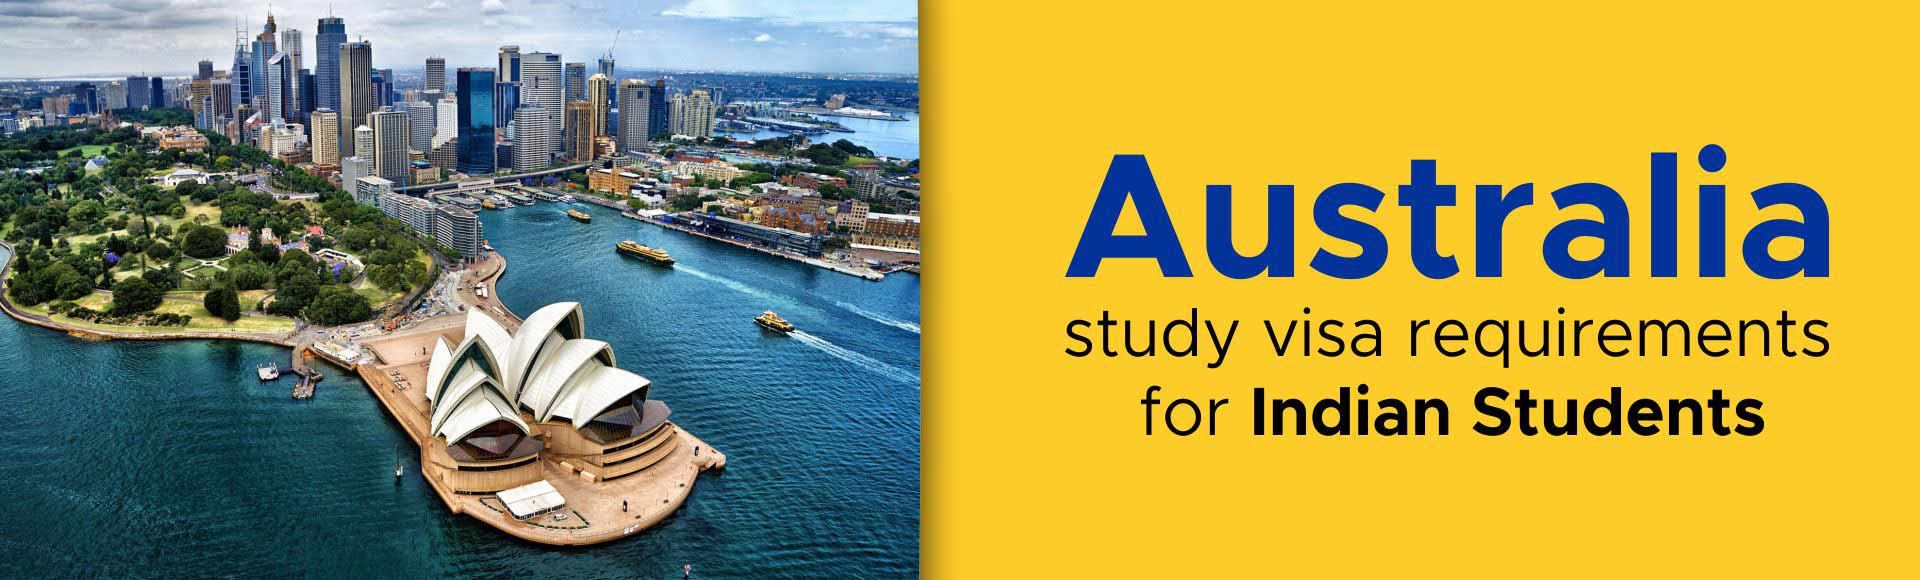 Australia Study Visa Requirements for Indian students